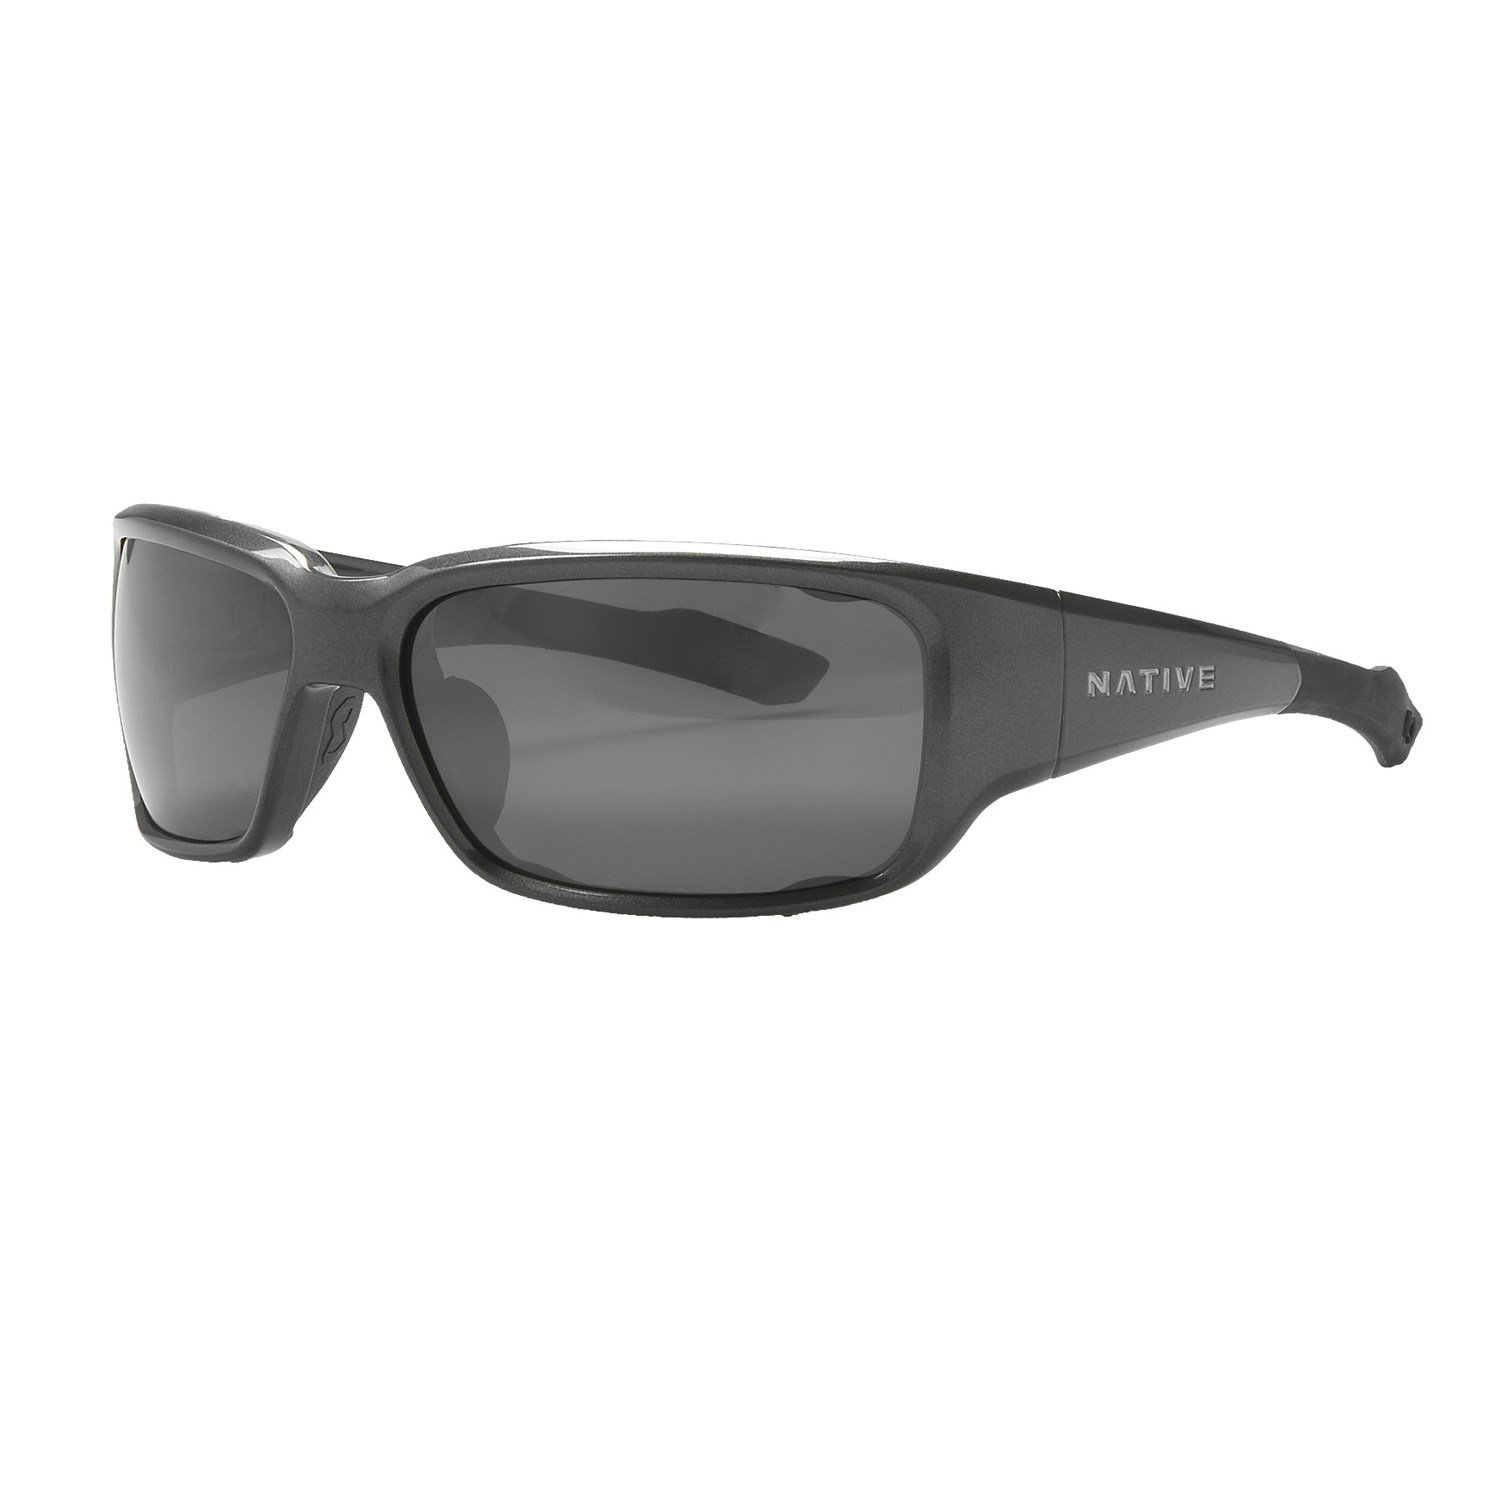 Native Eyewear Bolder Sunglasses - Polarized Gunmetal/Silver Reflex